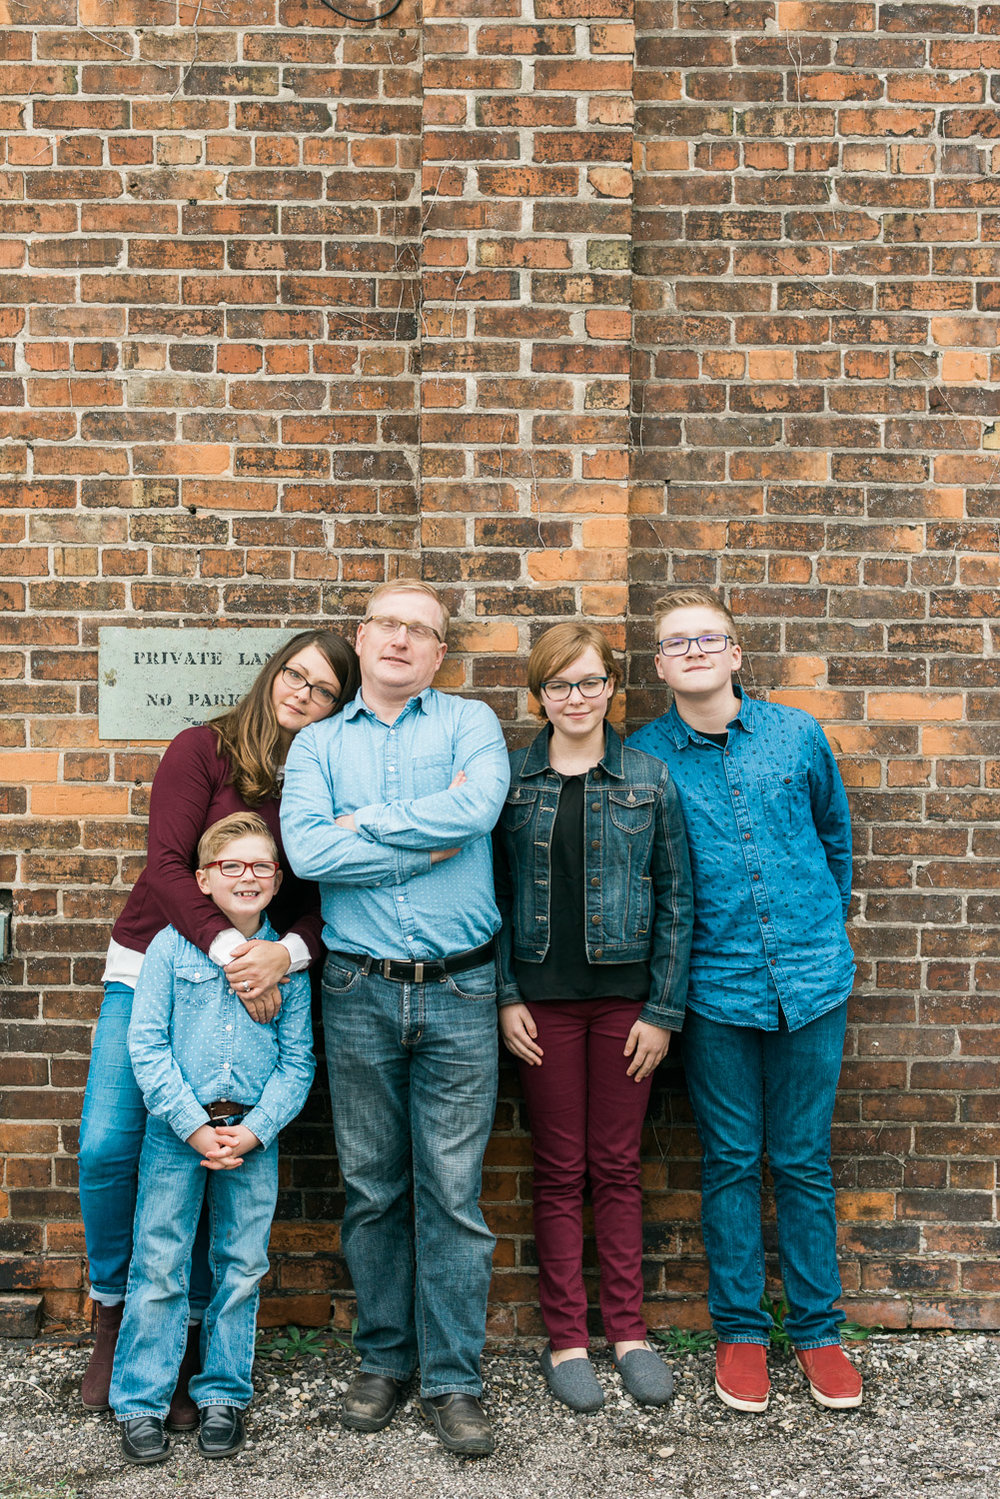 brickwall-family-photo-shoot.jpg